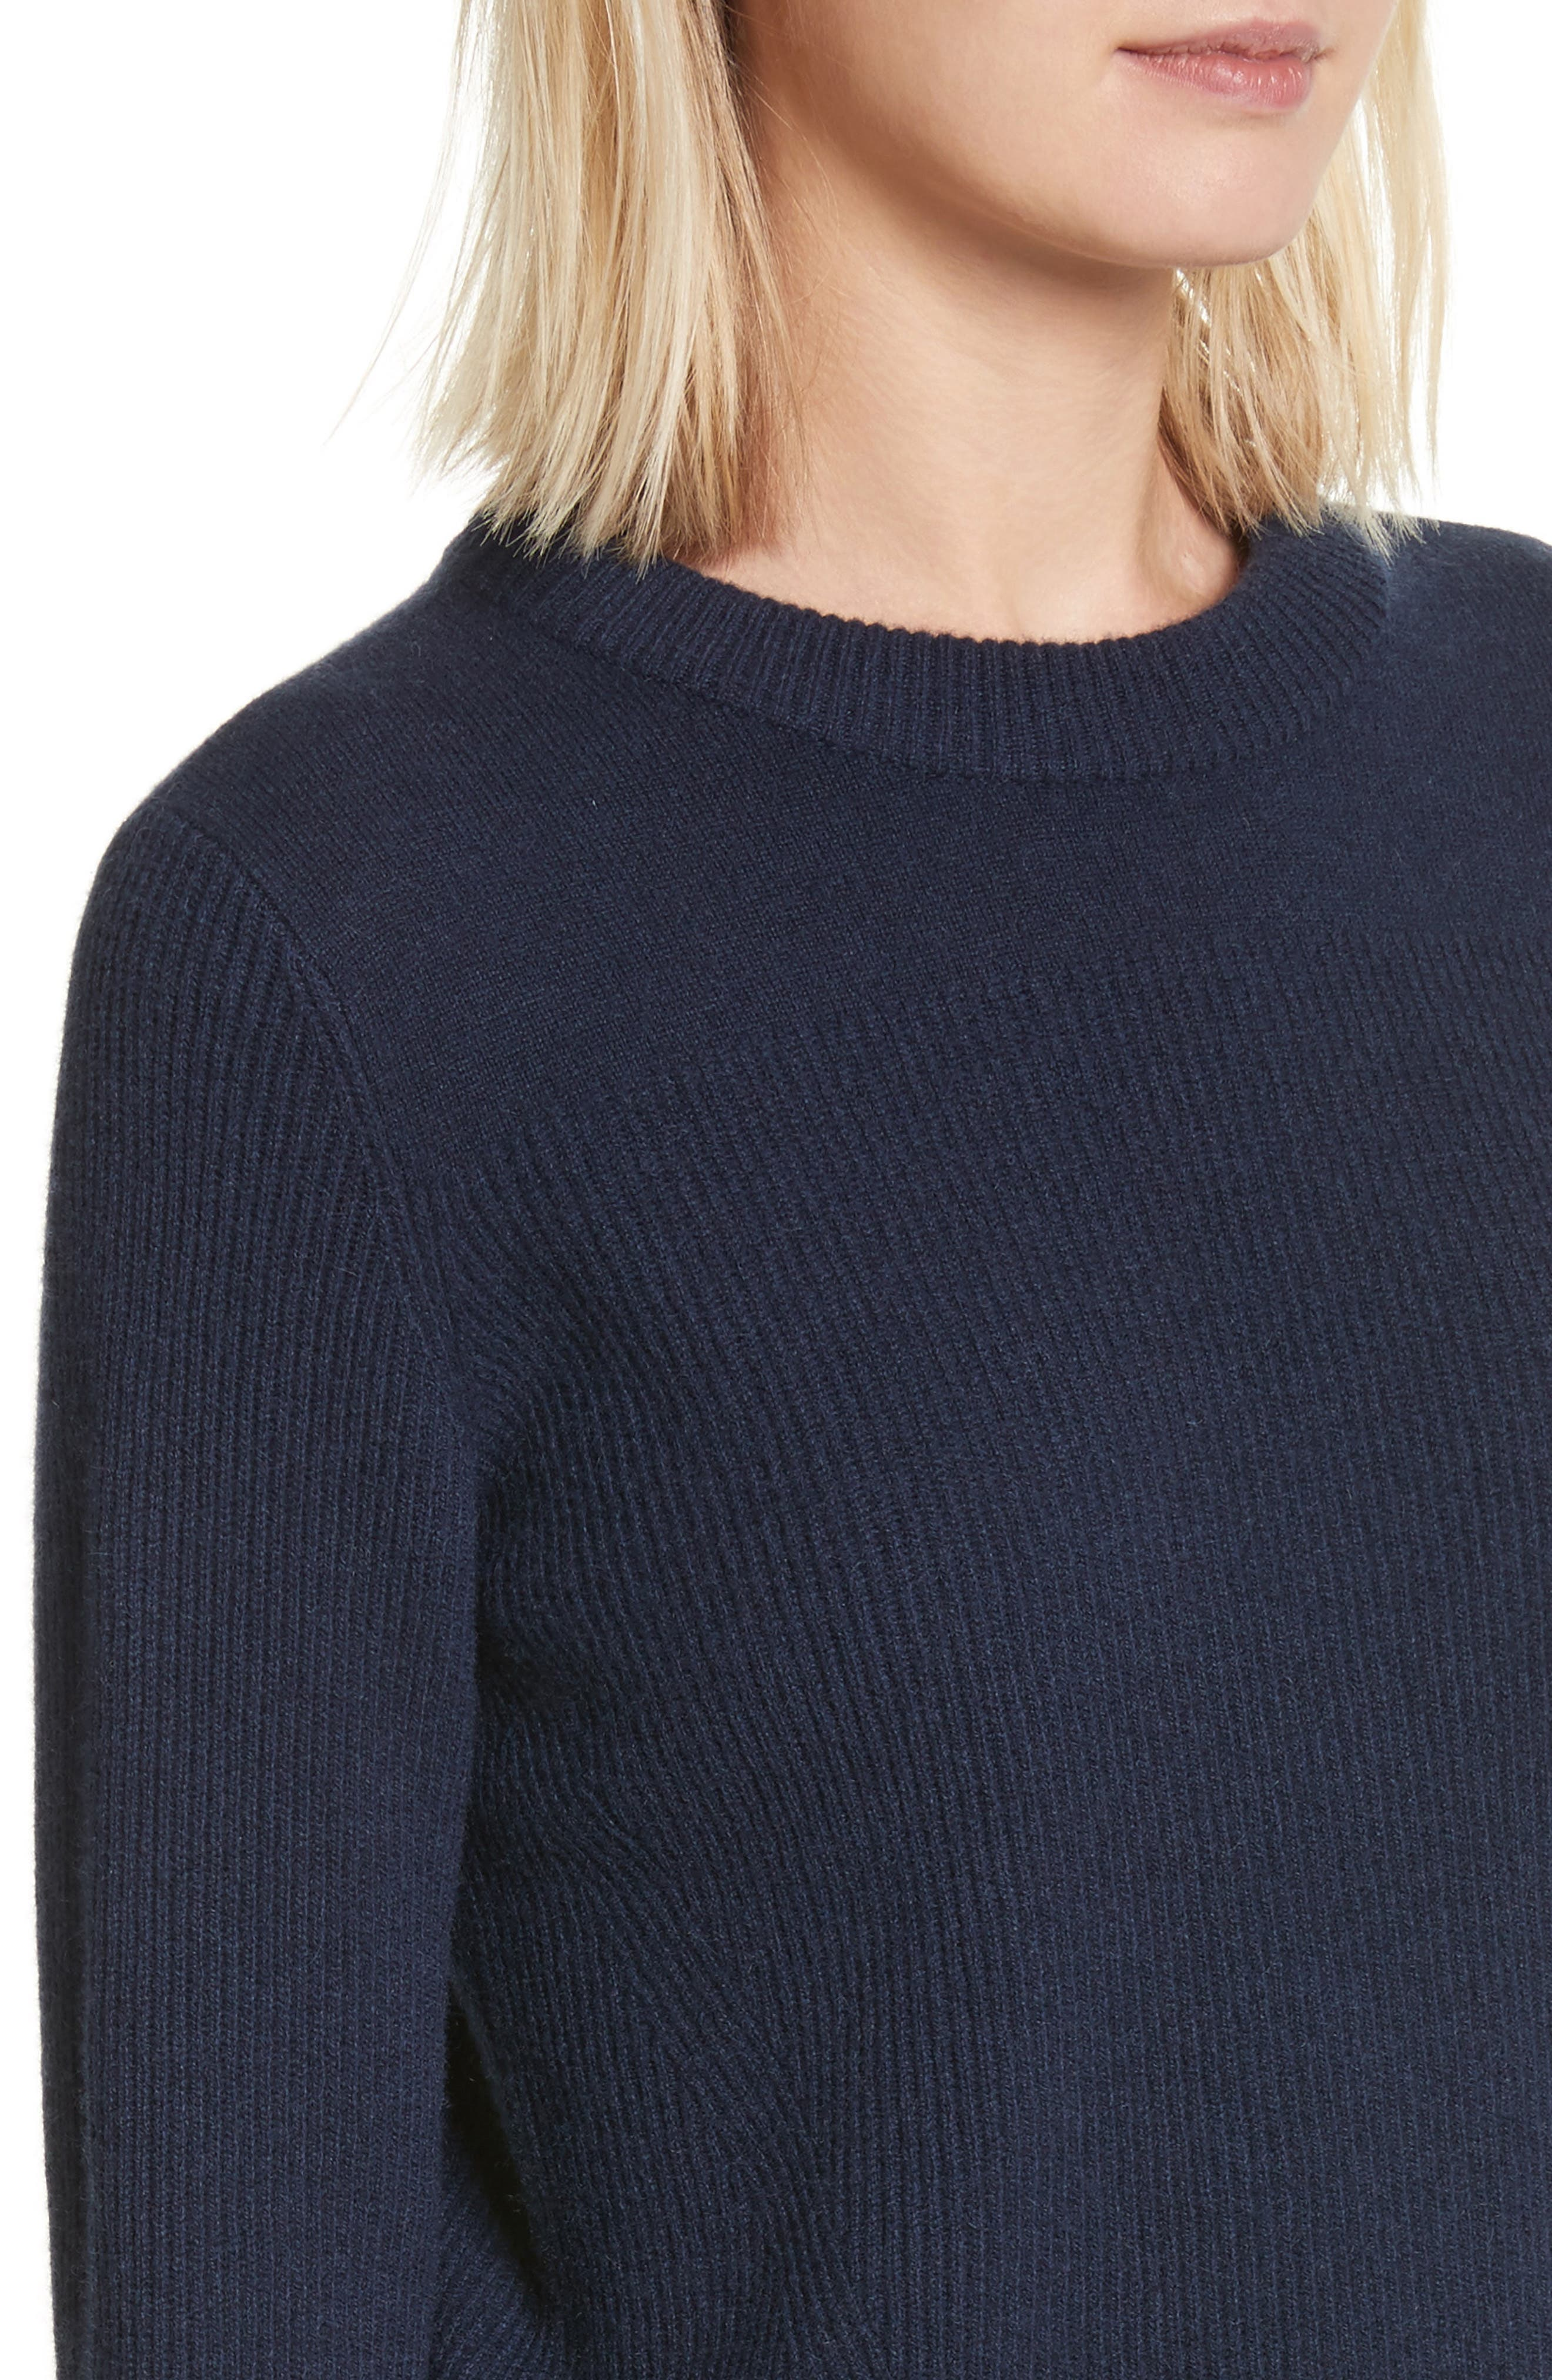 Ace Cashmere Crop Sweater,                             Alternate thumbnail 4, color,                             Navy